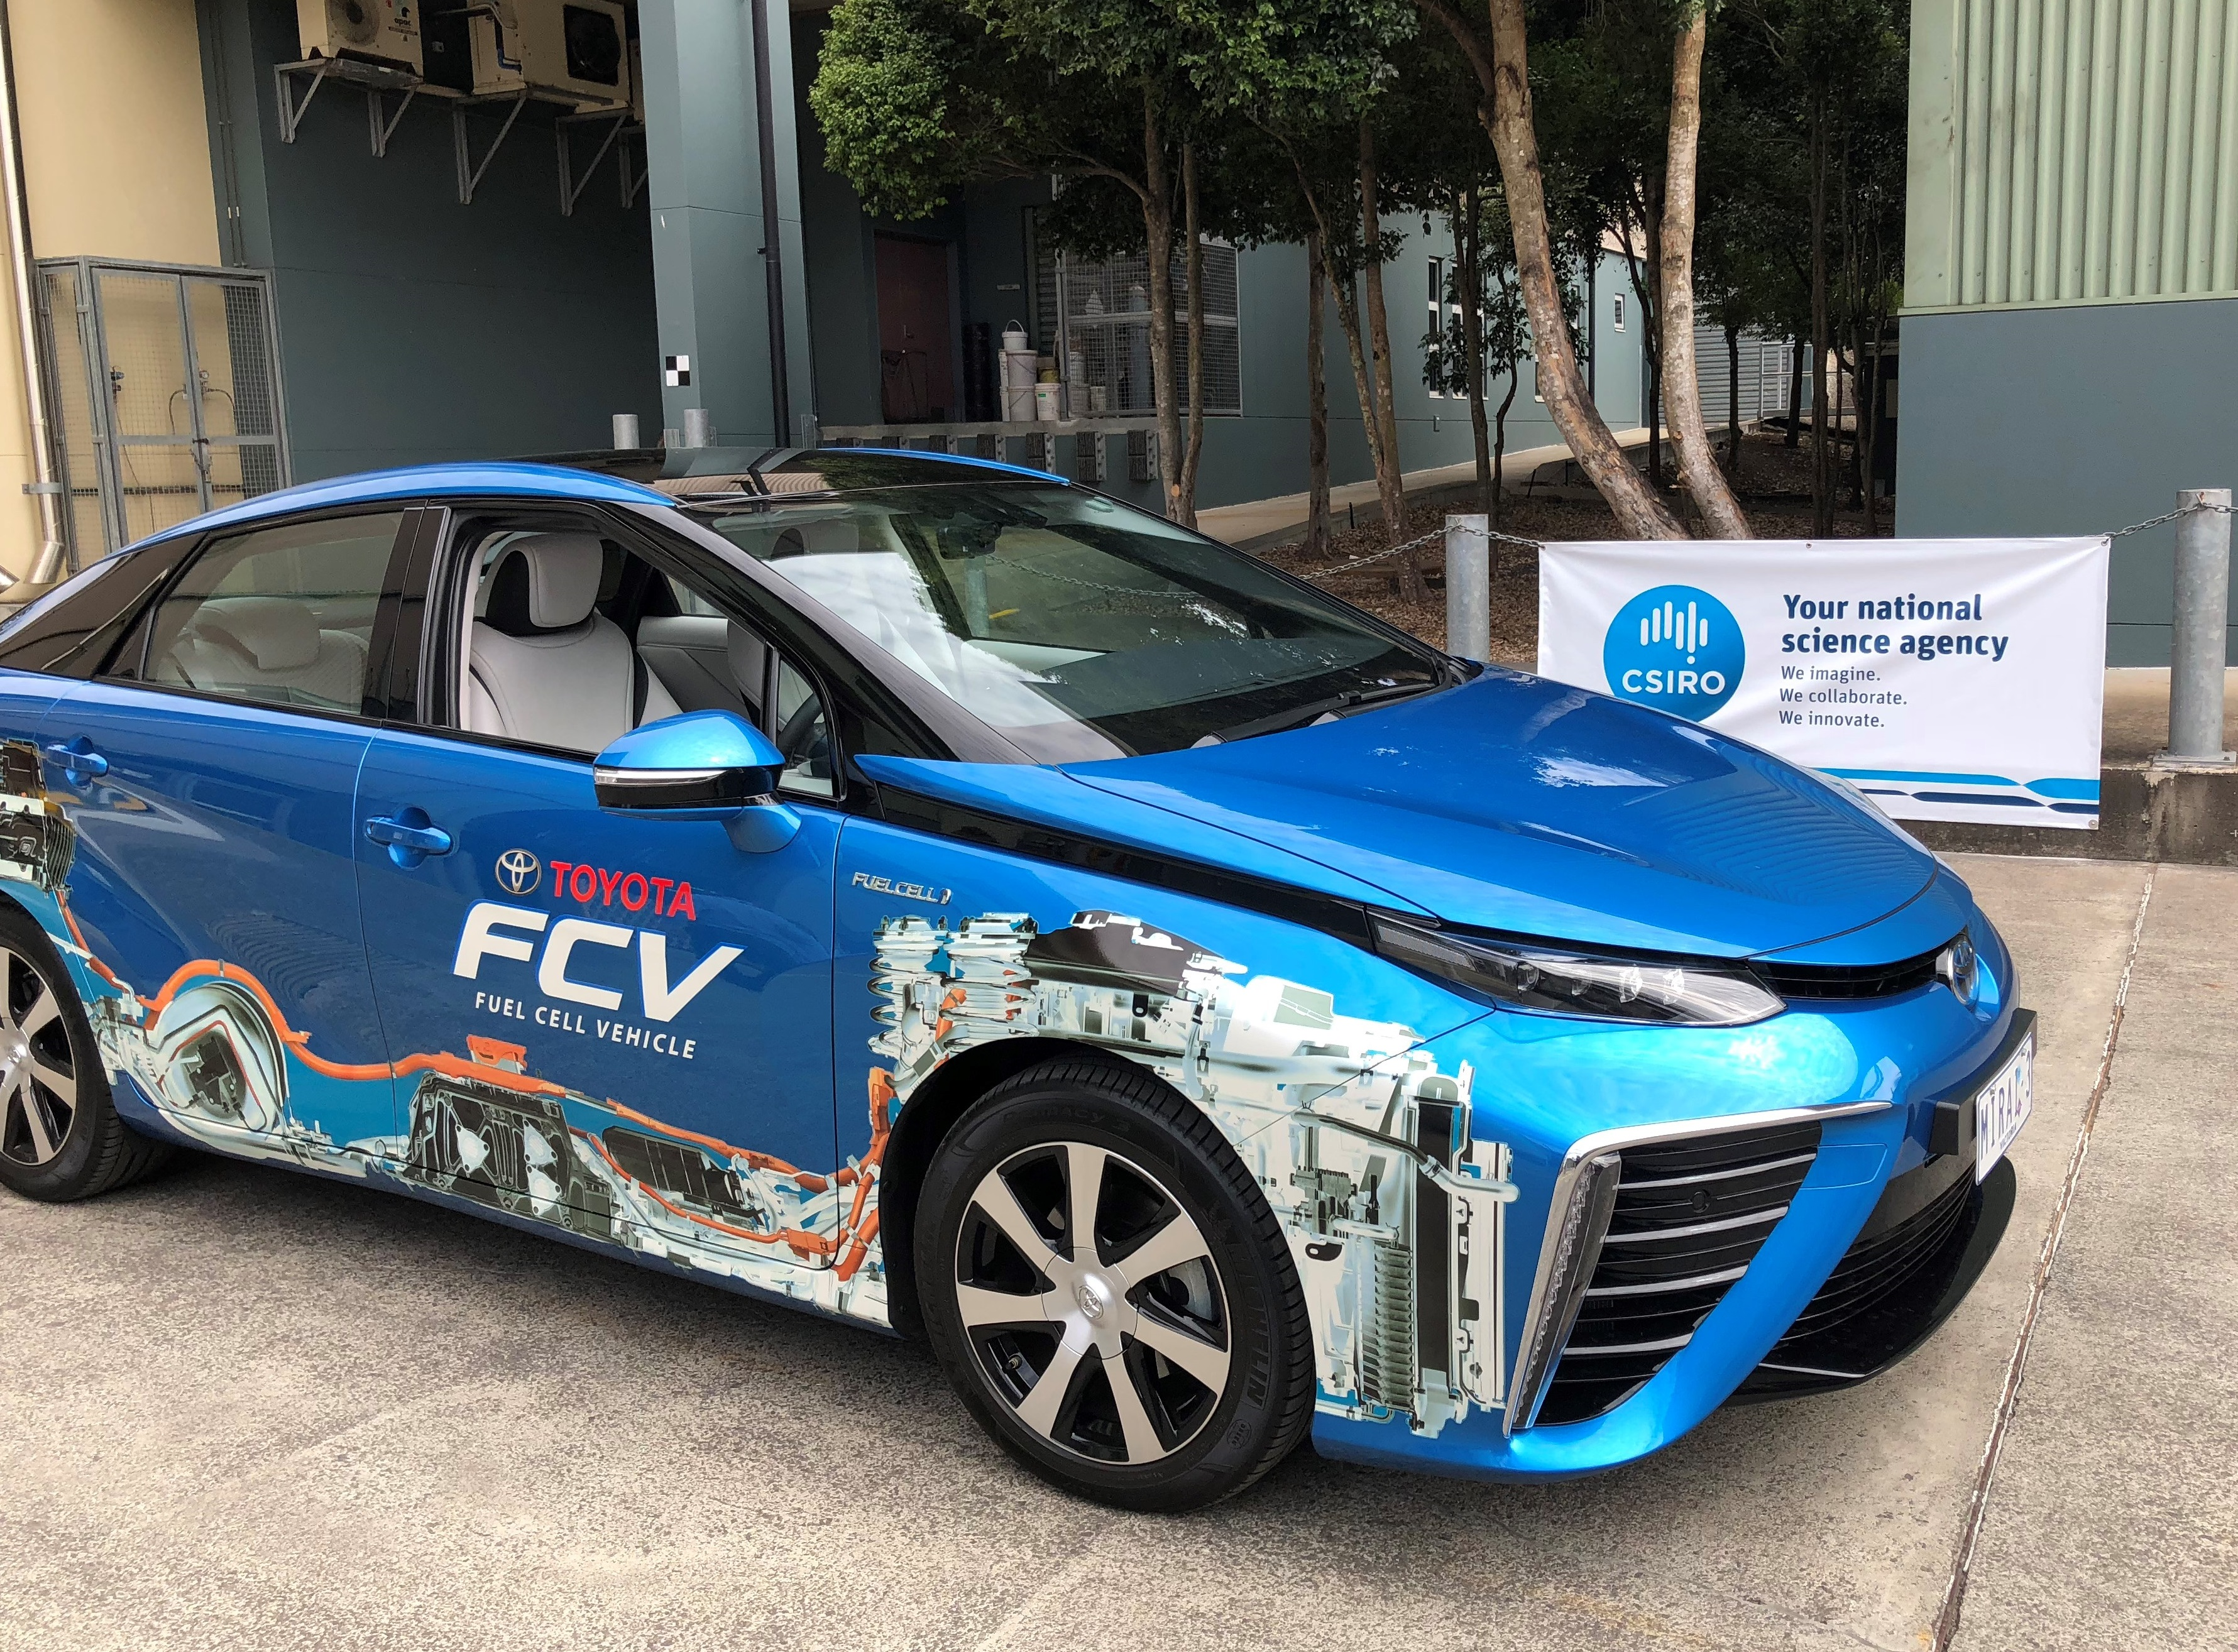 Toyota Mirai fuel cell vehicle sitting outside a CSIRO building.